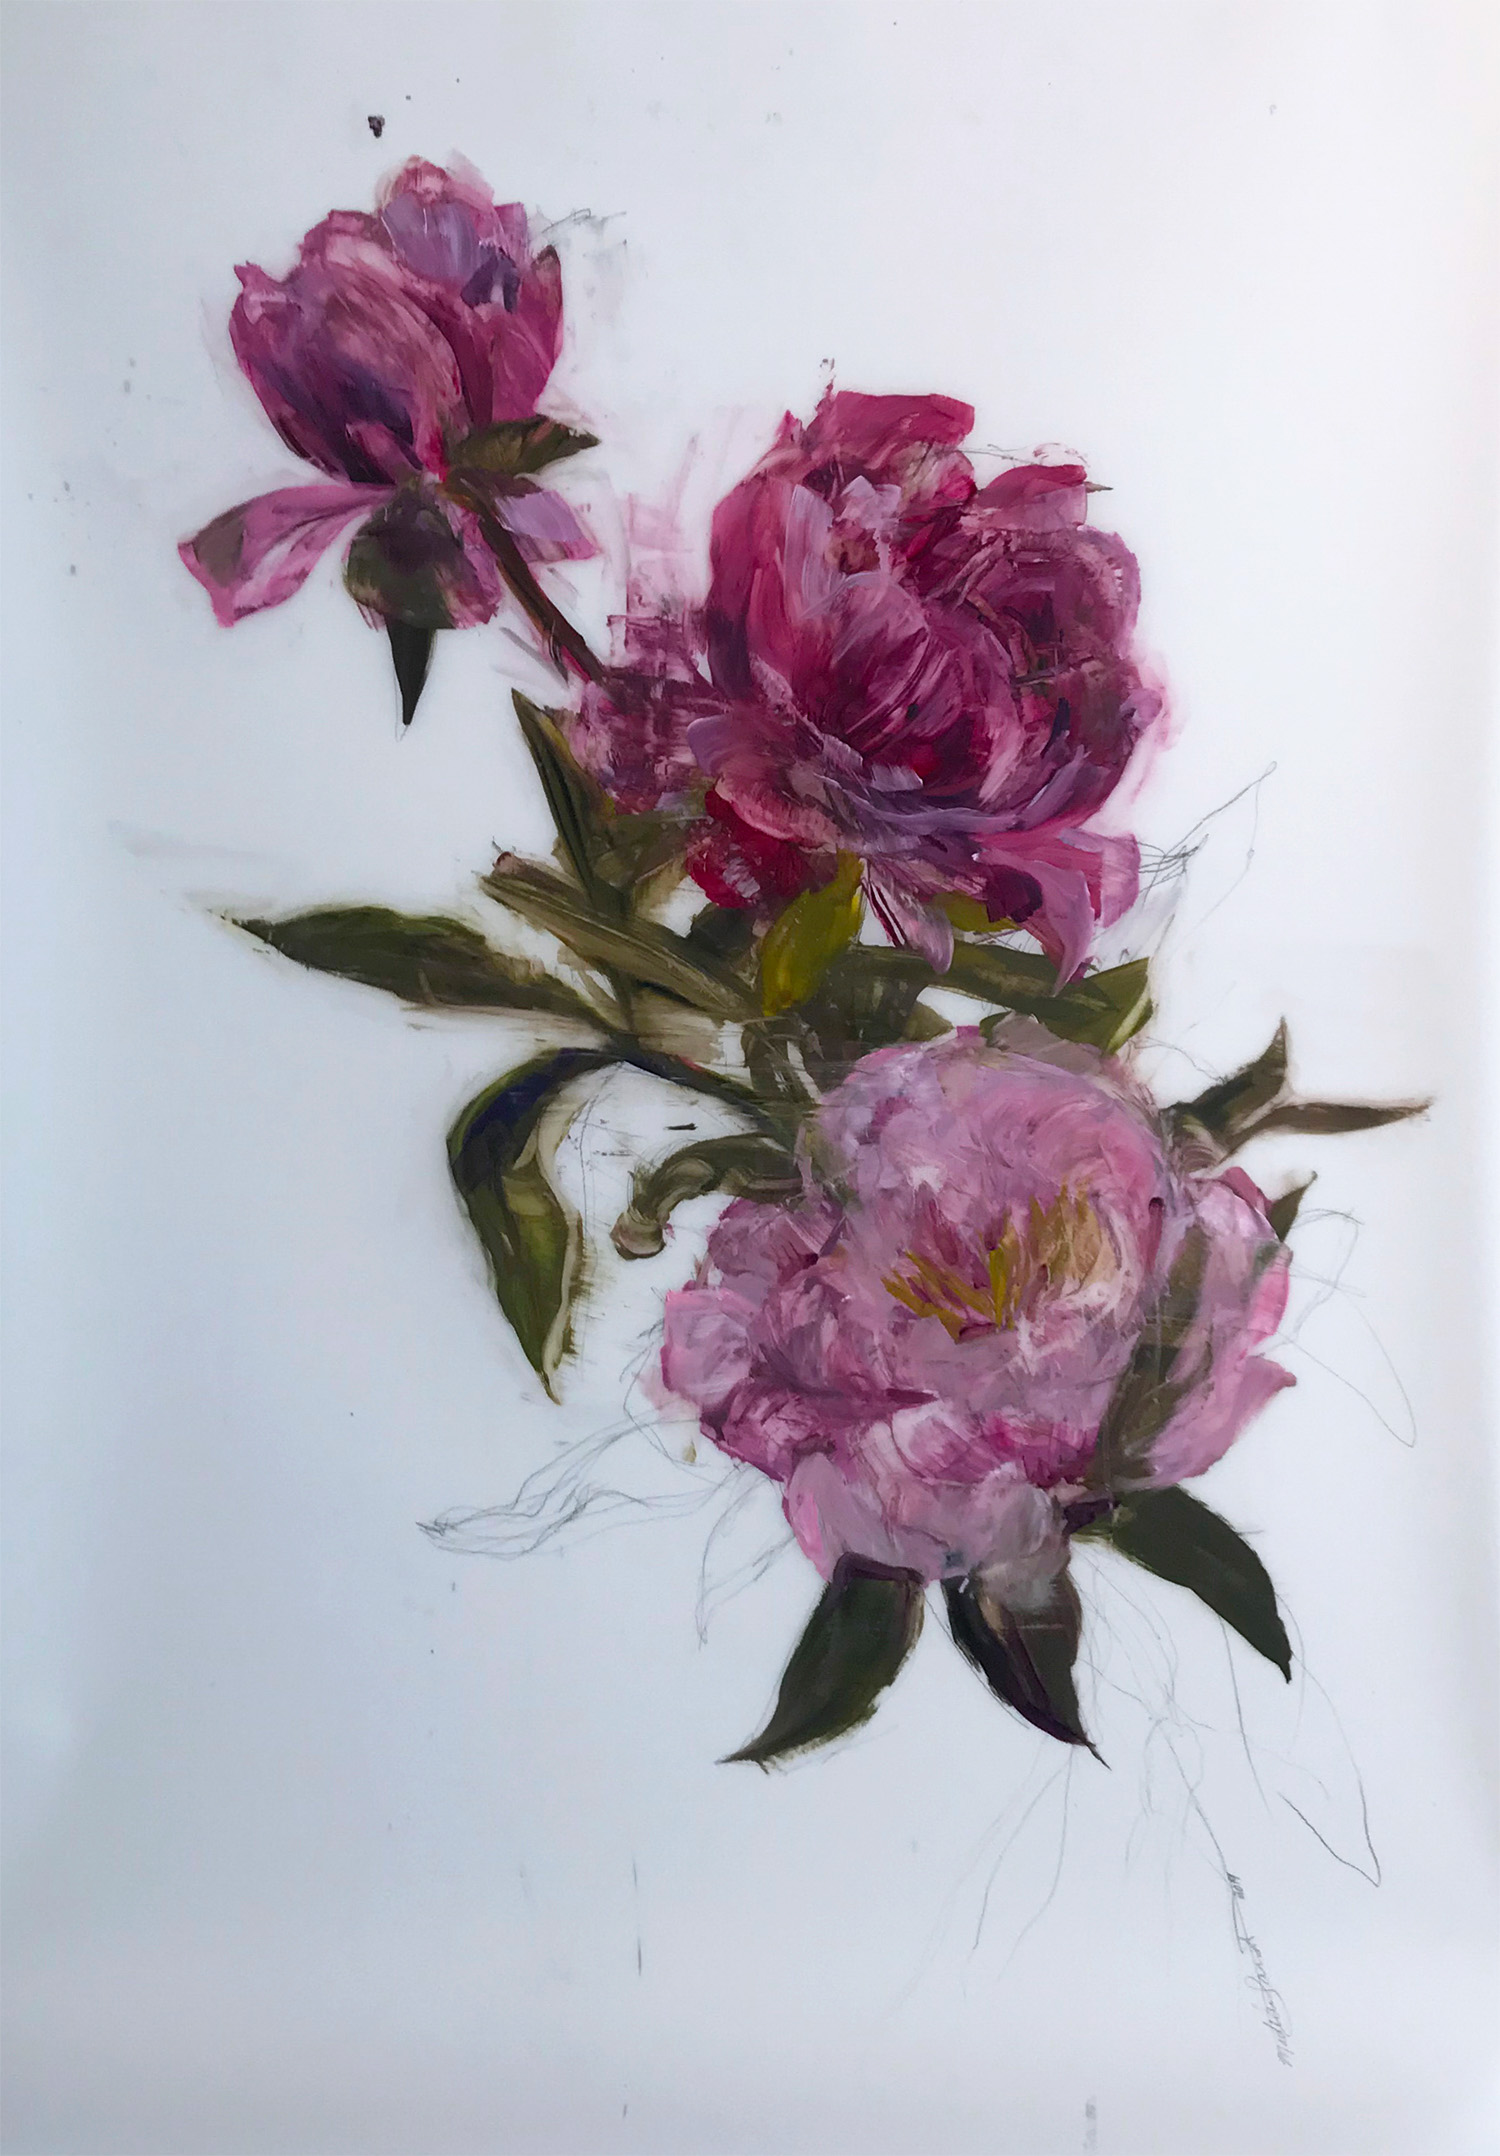 Madeleine Lamont, Three Pink Blooms, oil on mylar, 52 x 36 in.